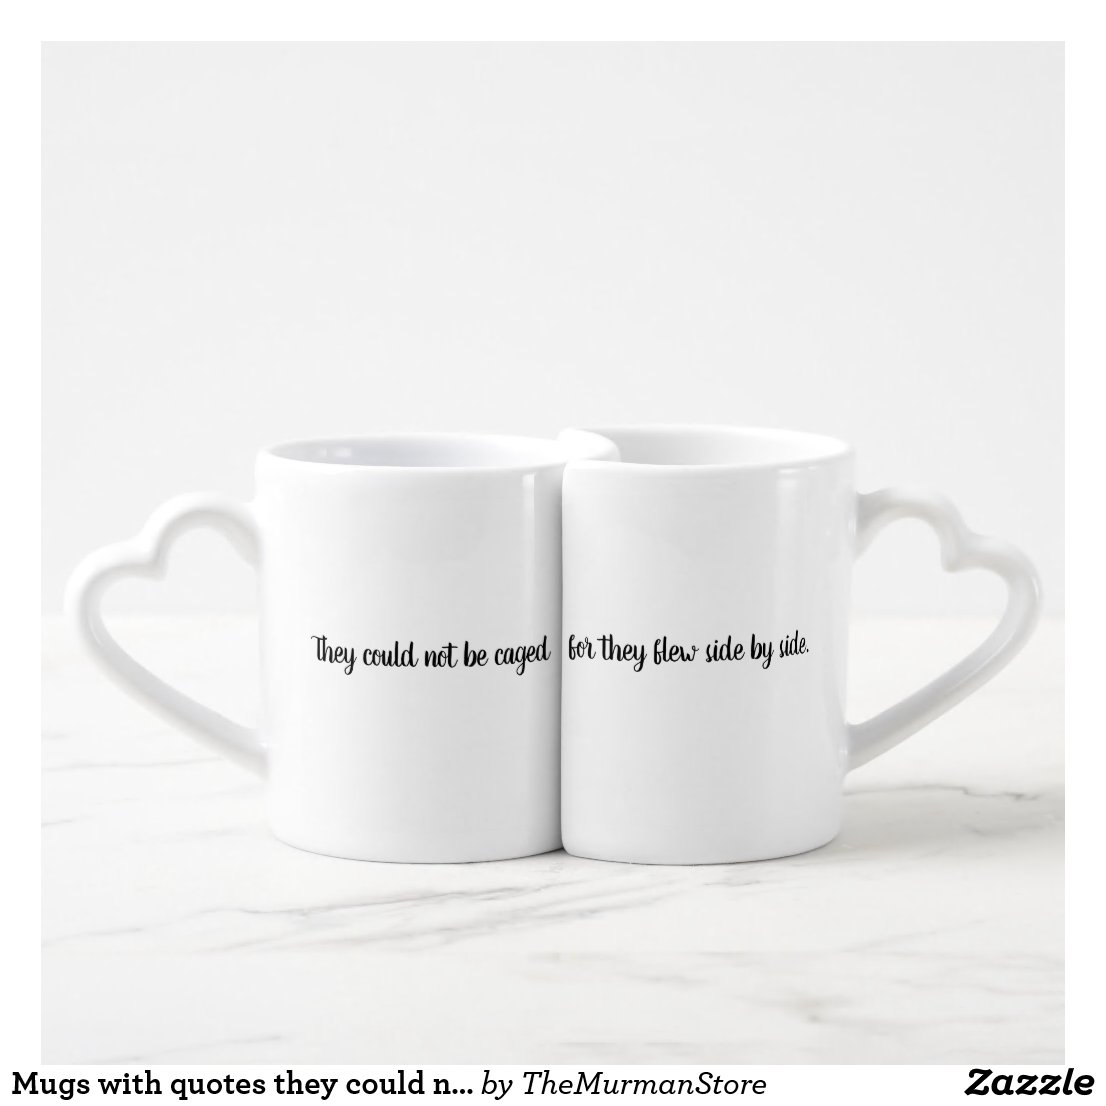 Mugs with quotes they could not be caged